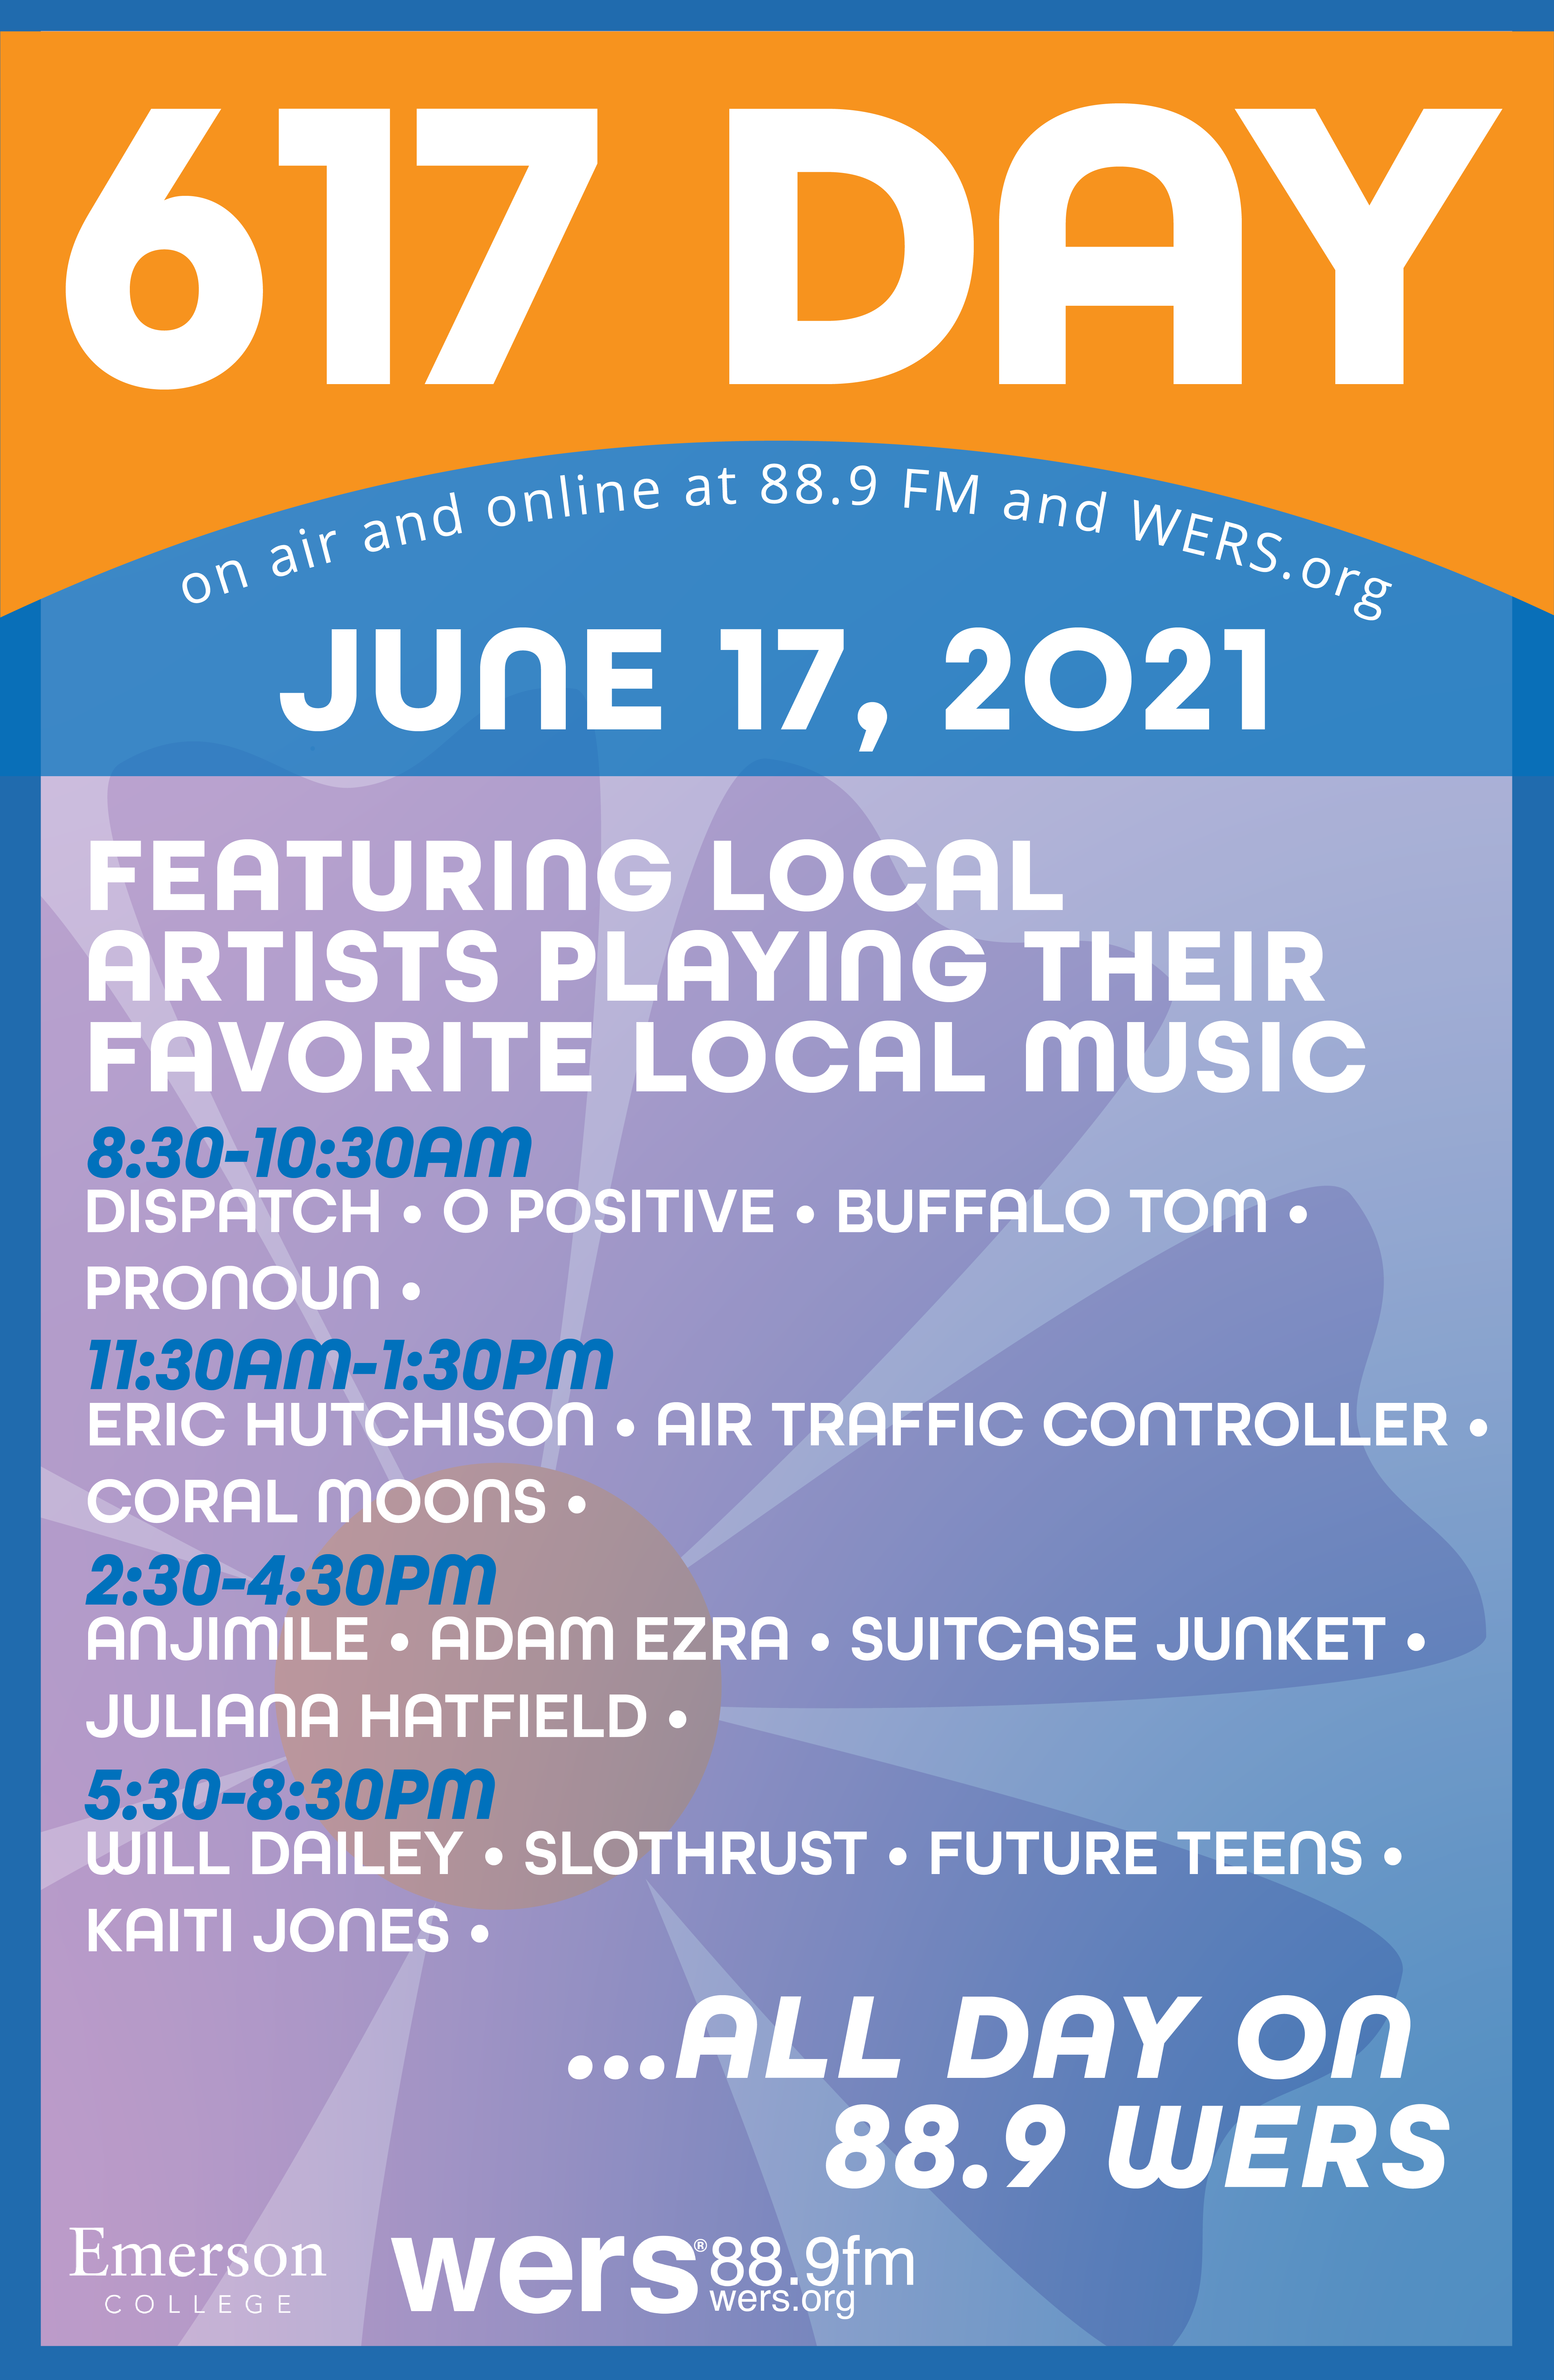 617 Day Lineup